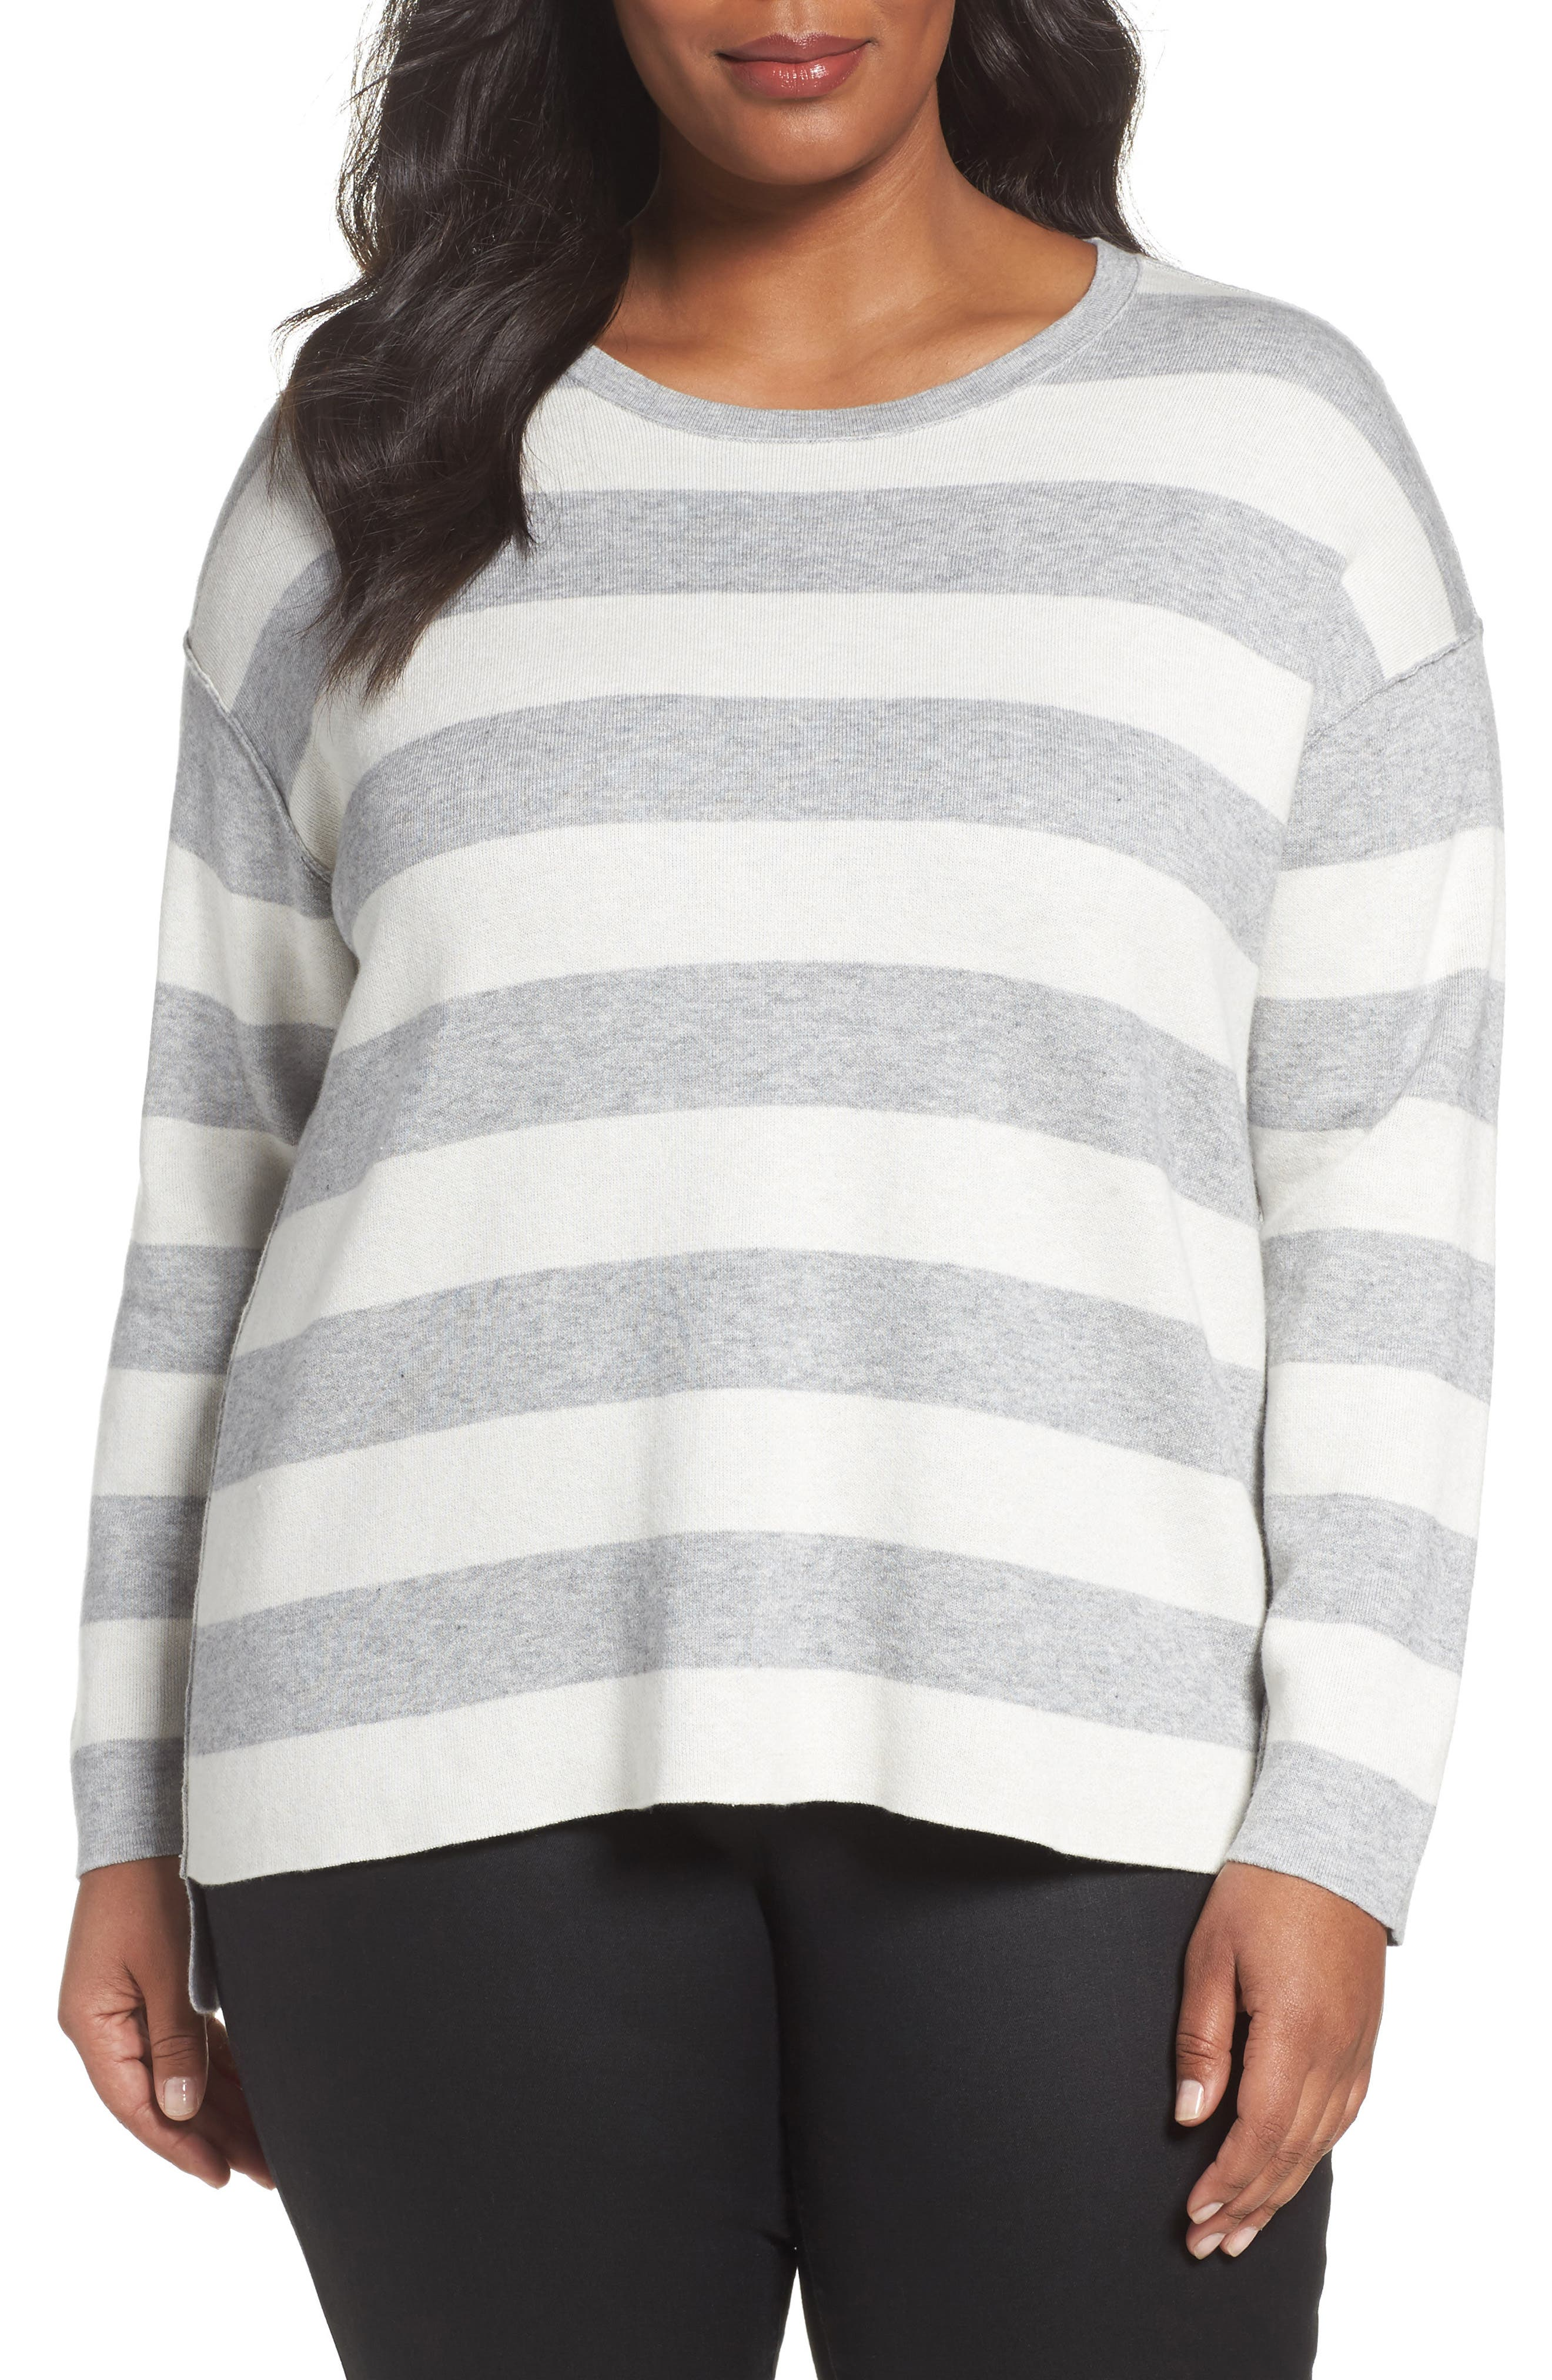 Alternate Image 1 Selected - Eileen Fisher Stripe Organic Cotton Blend Top (Plus Size)